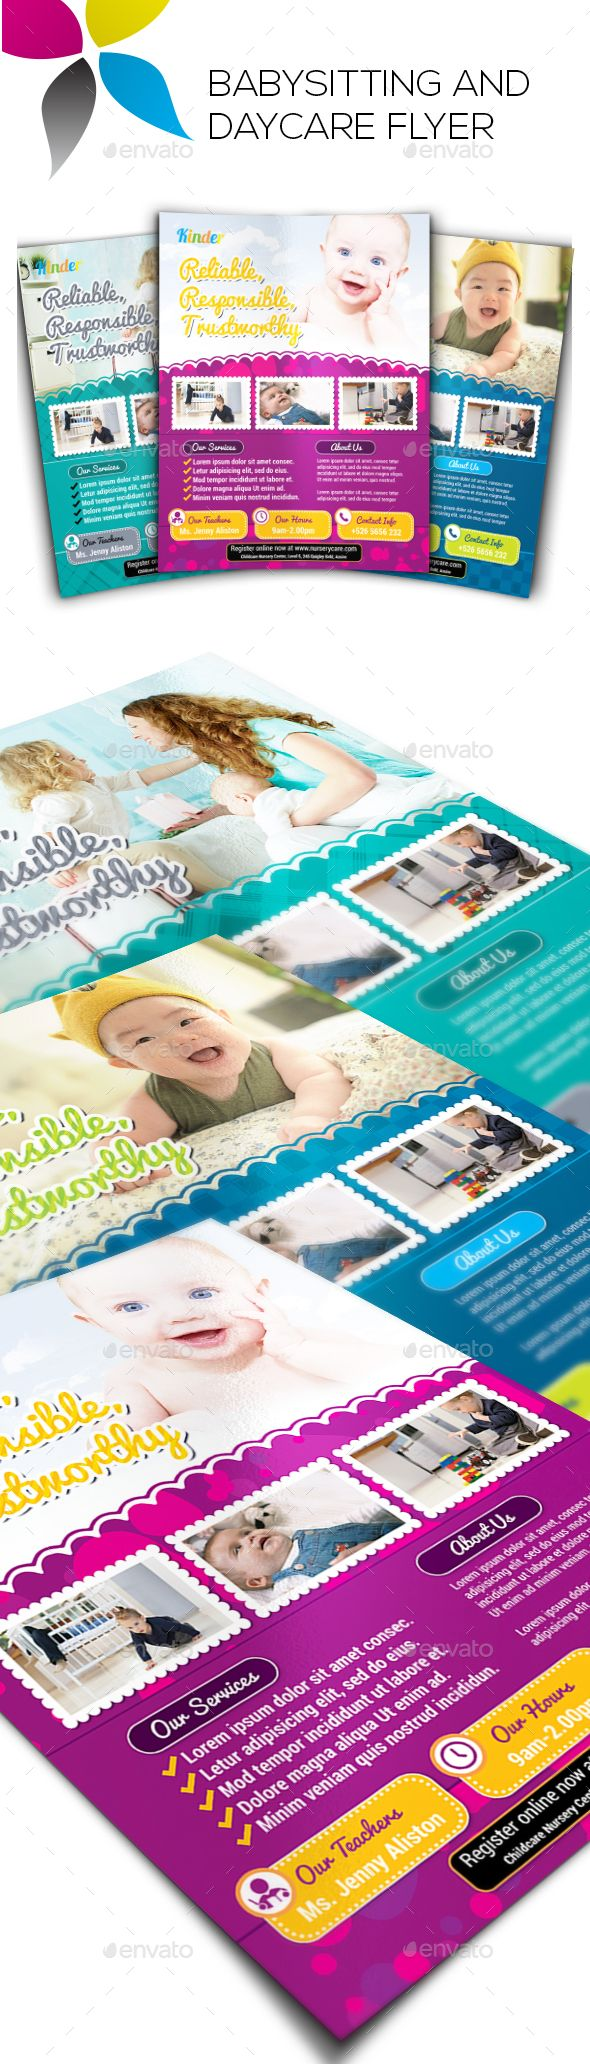 best ideas about babysitting flyers babysitting babysitting and daycare flyer design template corporate flyer template psd here